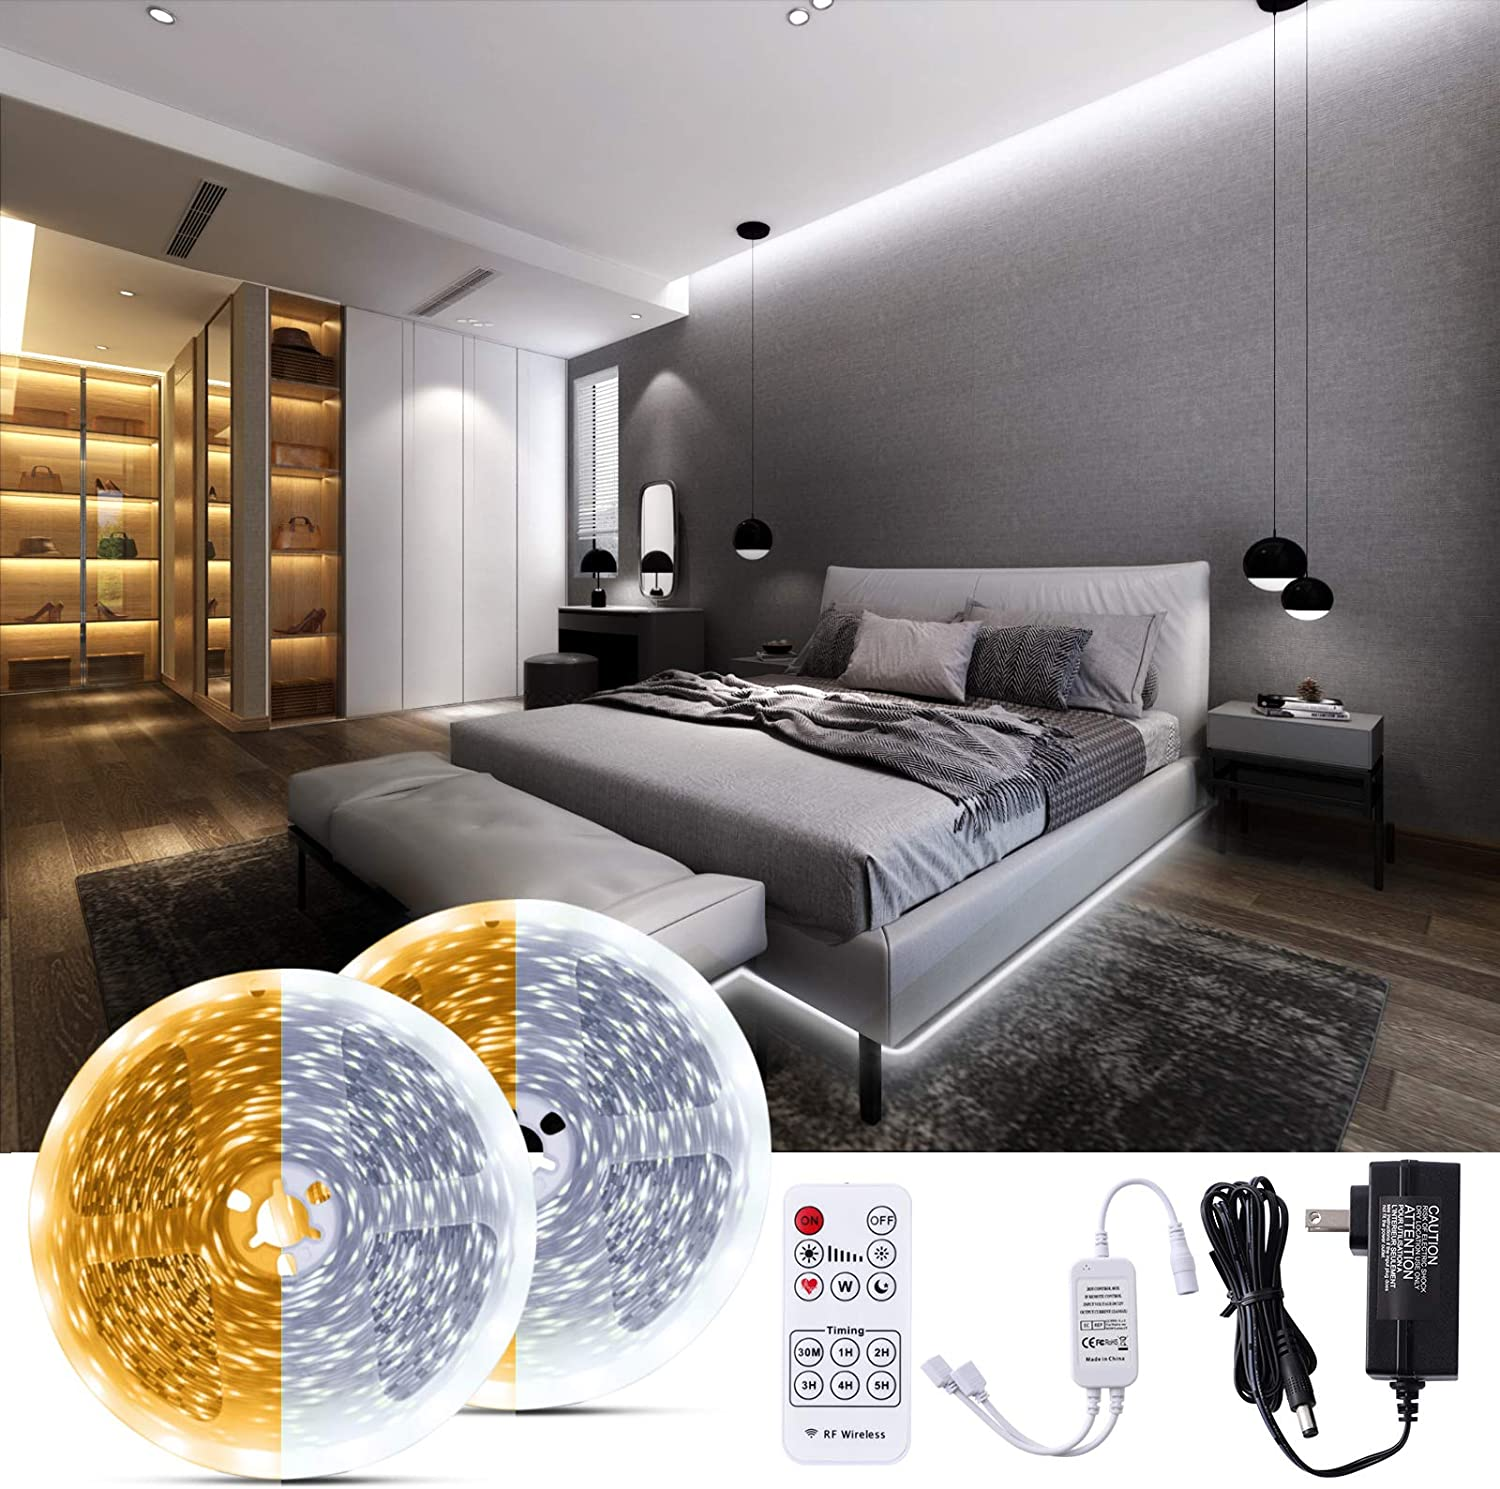 Bewahly LED Strip Light 3000K-6000K 65.6ft White Tunable Dimma Ranking TOP6 Popular brand in the world